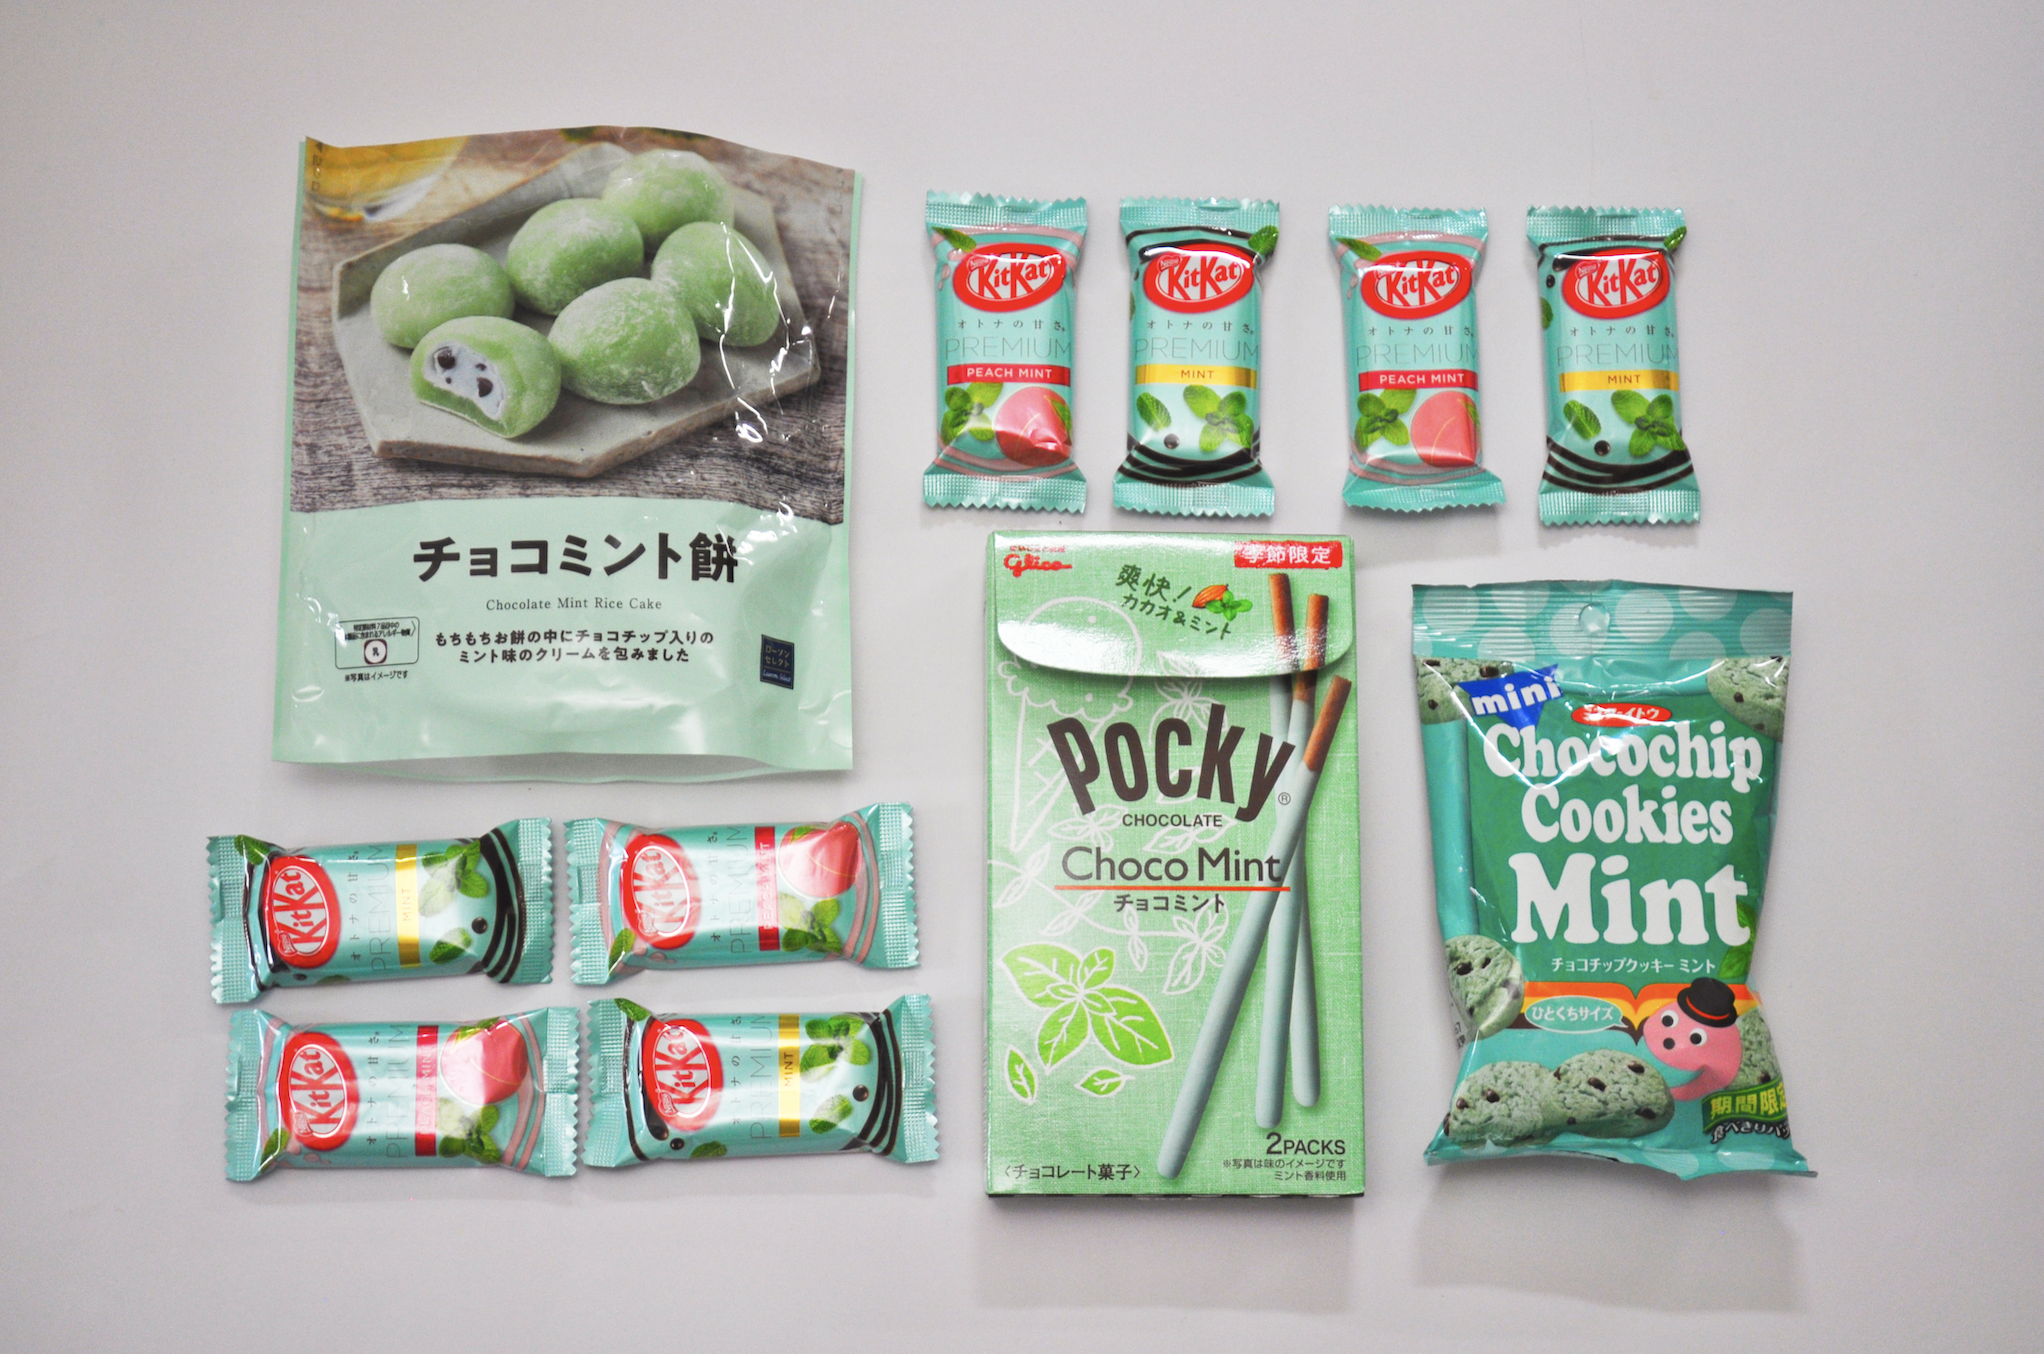 Mint chocolate is trending in Tokyo right now